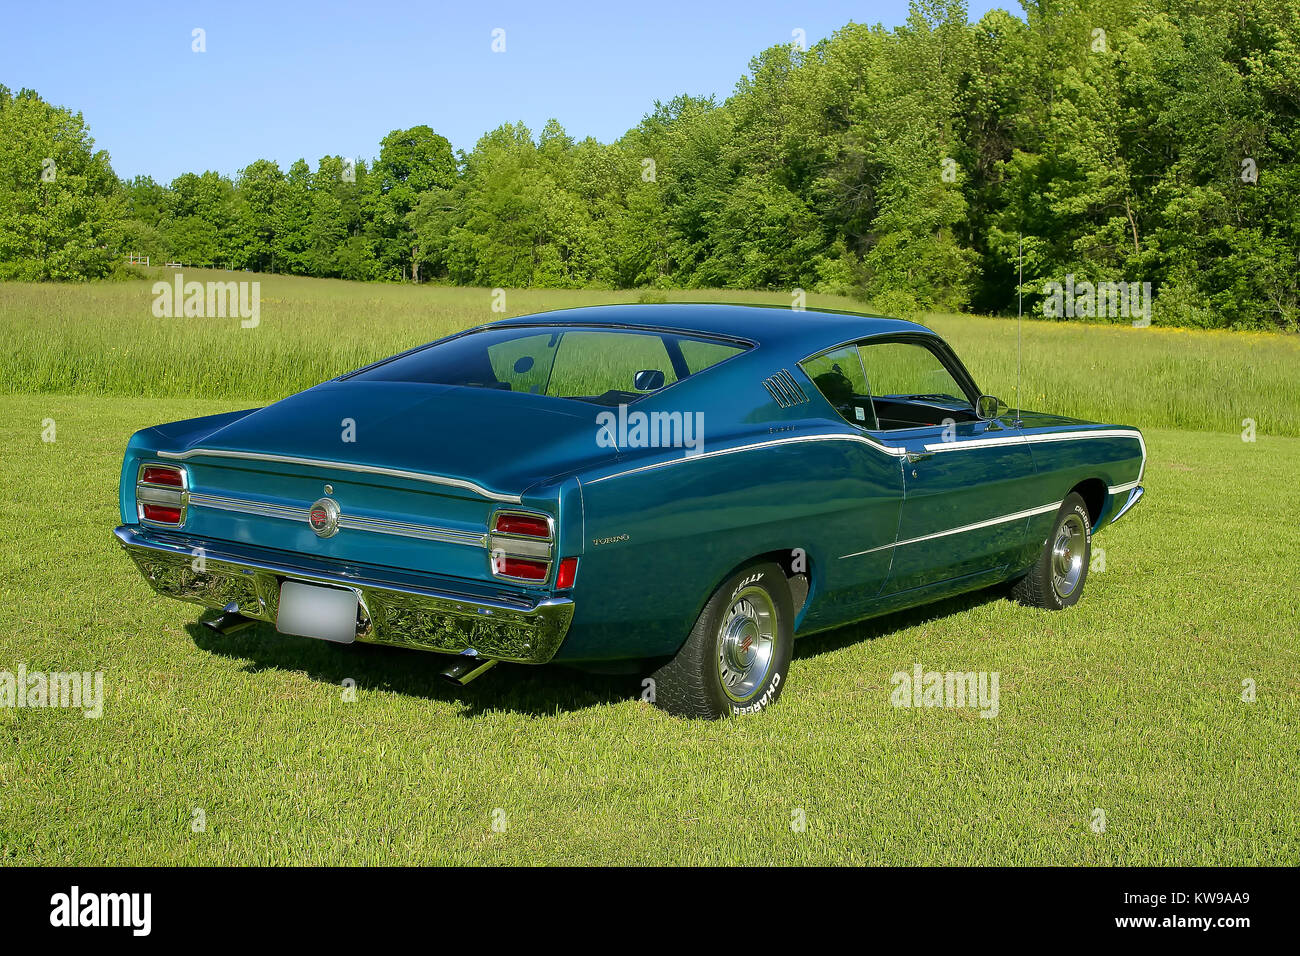 1968 Ford Torino on Grass Stock Photo: 170465409 - Alamy